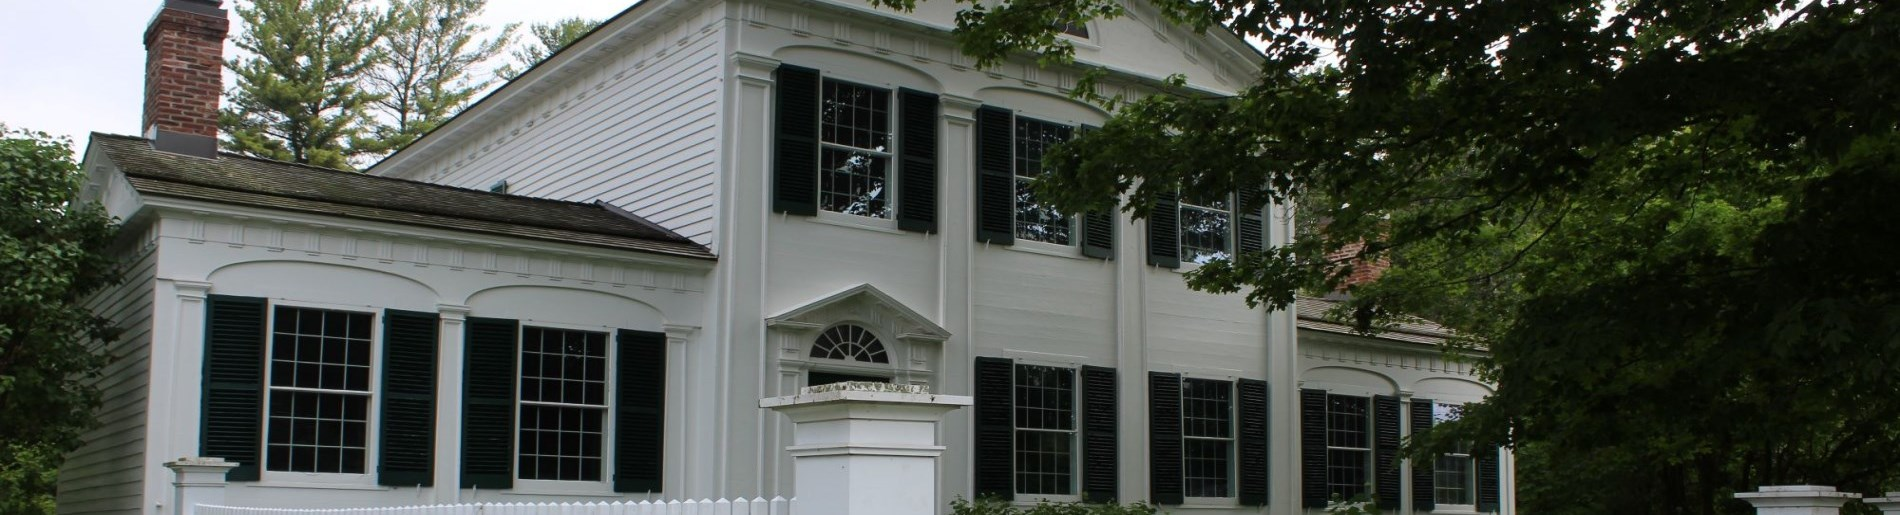 white building with green doors and window shutters